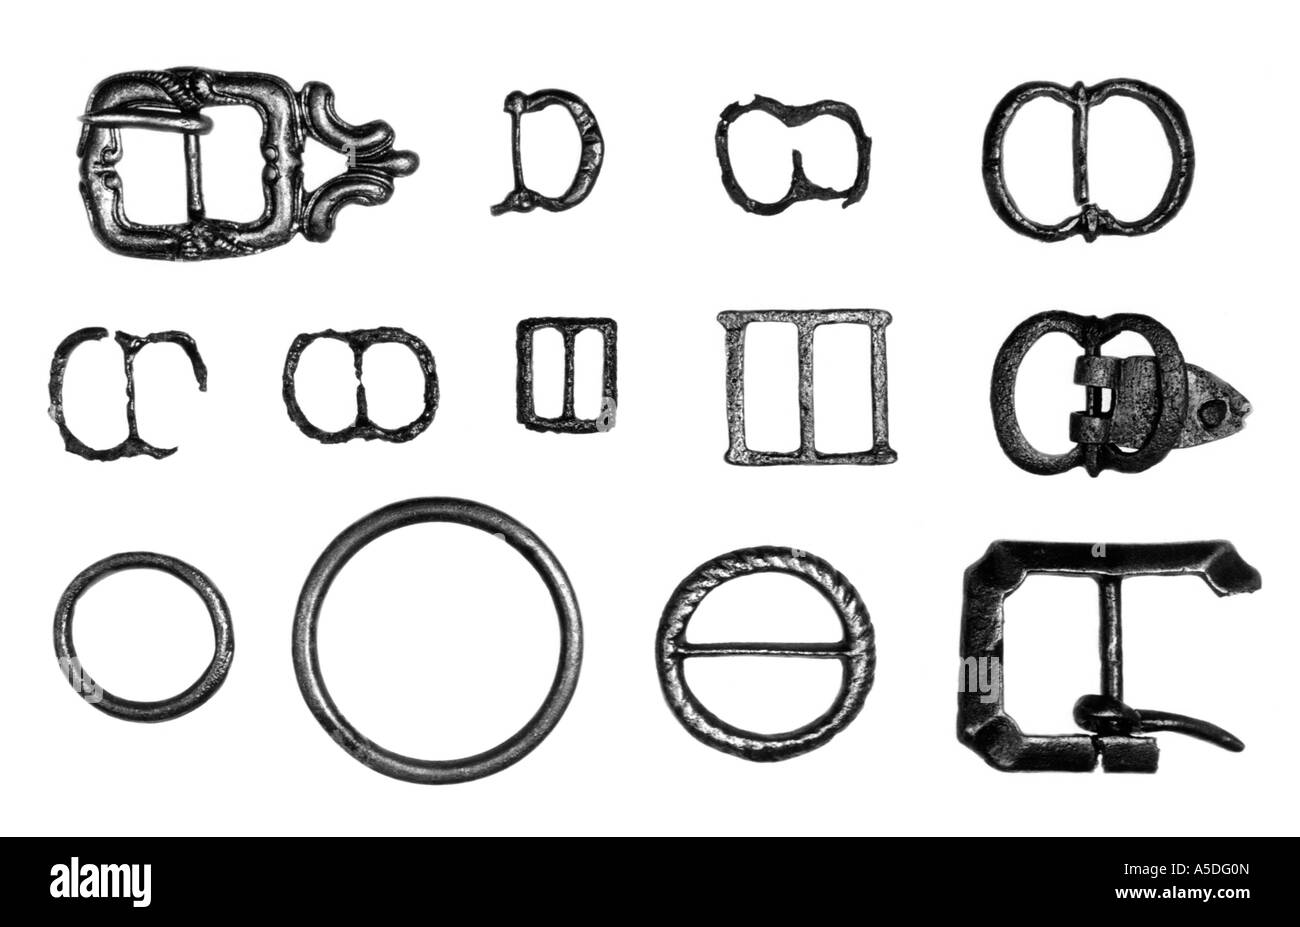 Selection of sixteenth century copper alloy buckles - Stock Image